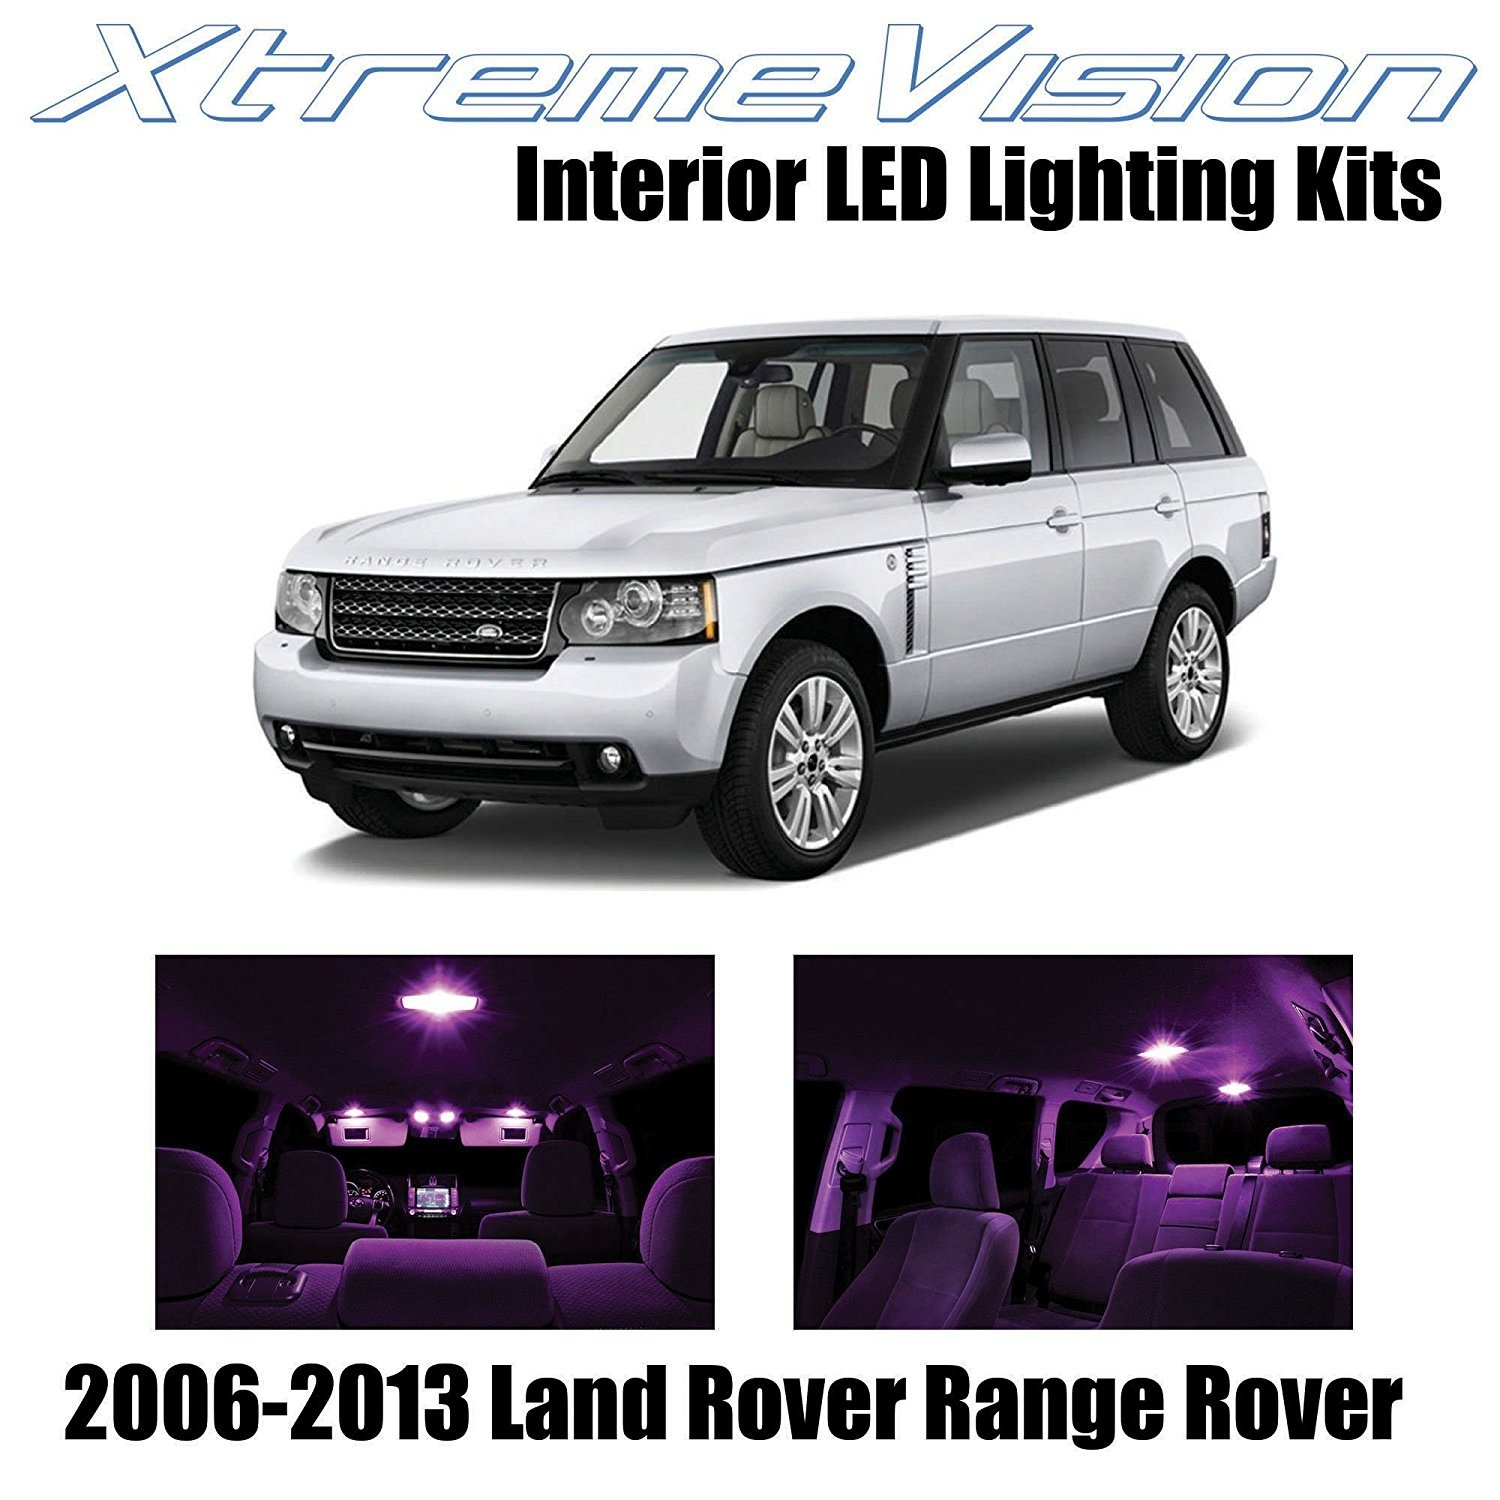 XtremeVision LED for Land Rover Range Rover 2006-2013 (14 Pieces) Green Premium Interior LED Kit Package + Installation Tool